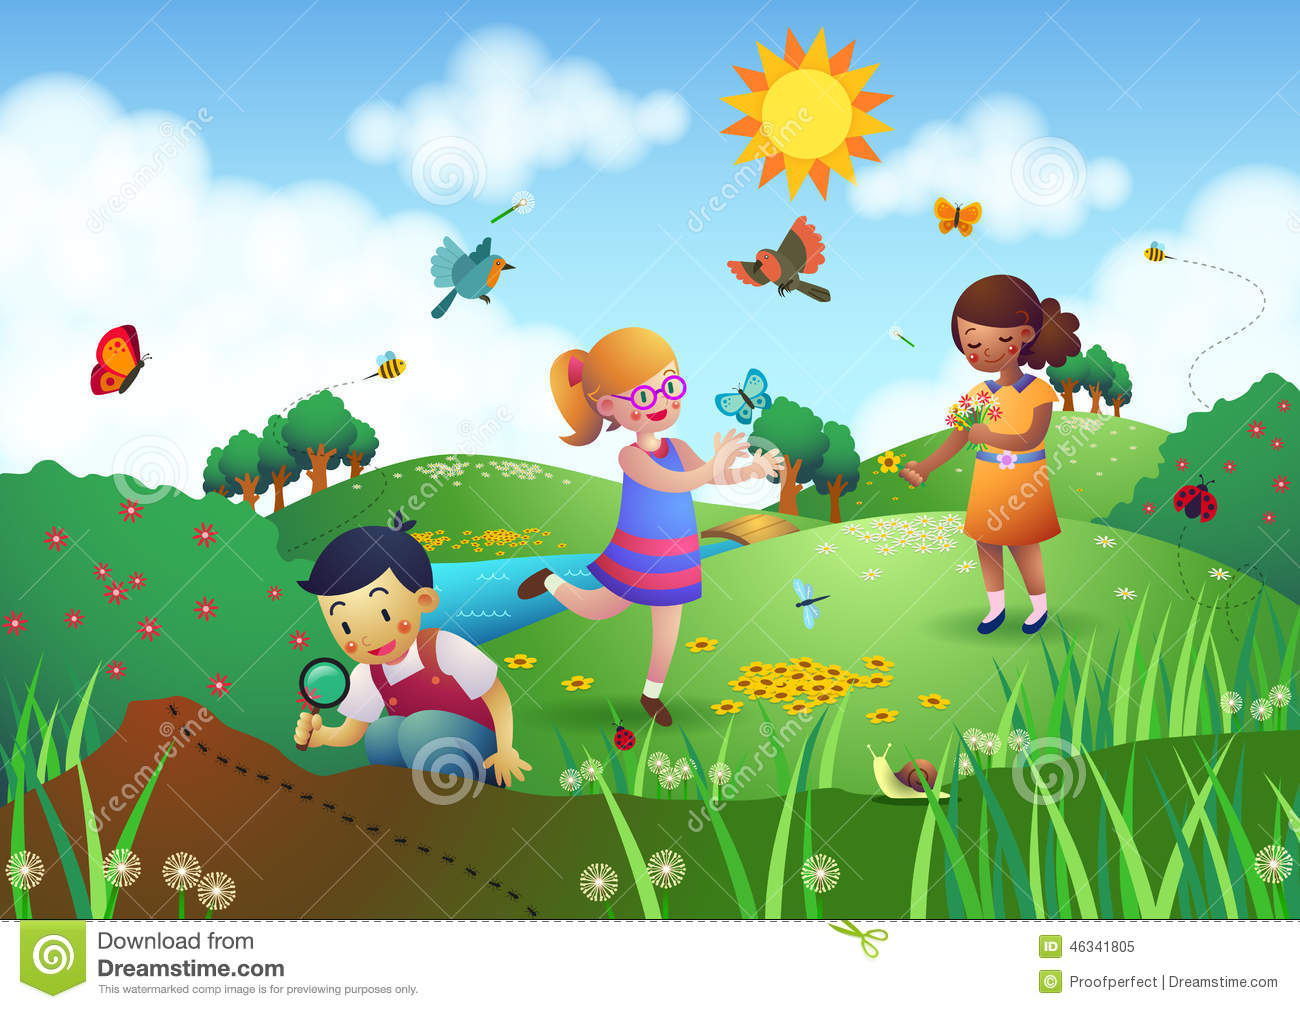 Fence clipart child garden #11